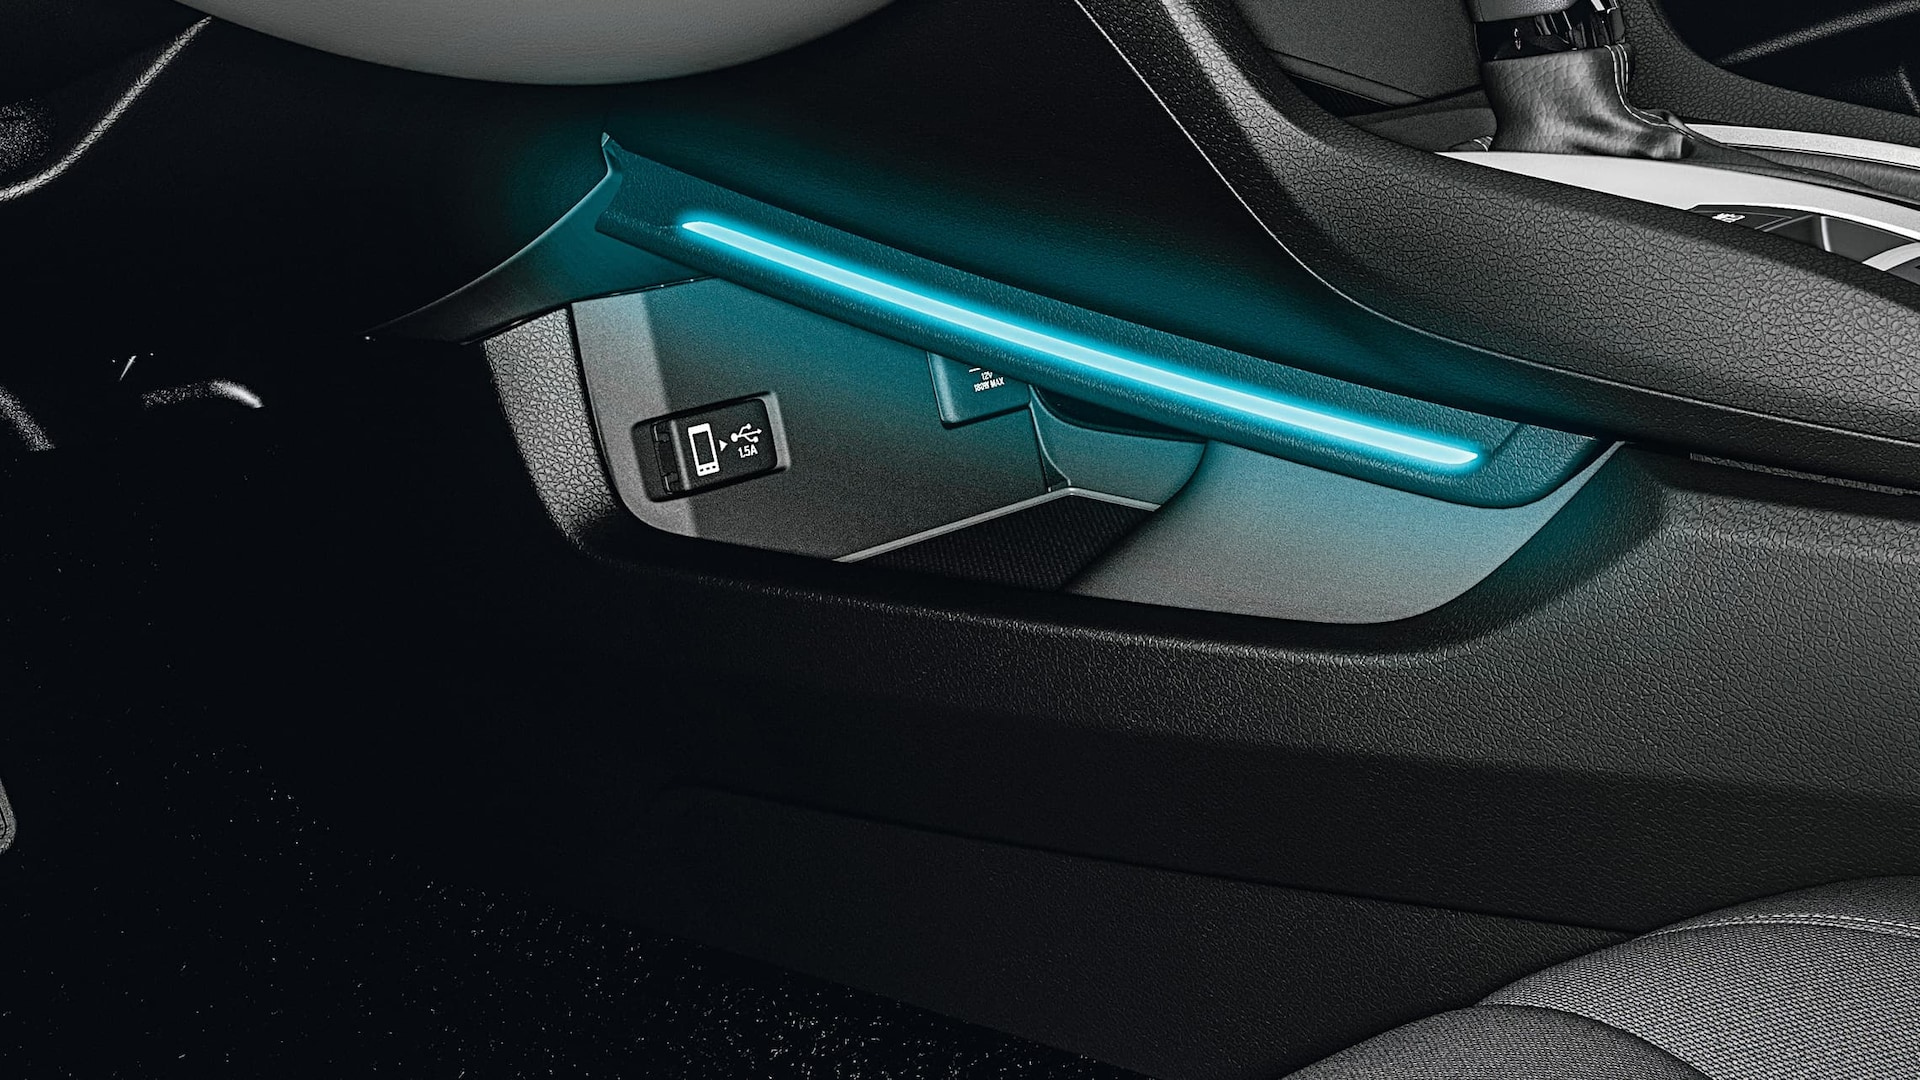 Illuminated driver-side console detail in the 2020 Honda Civic Sedan.